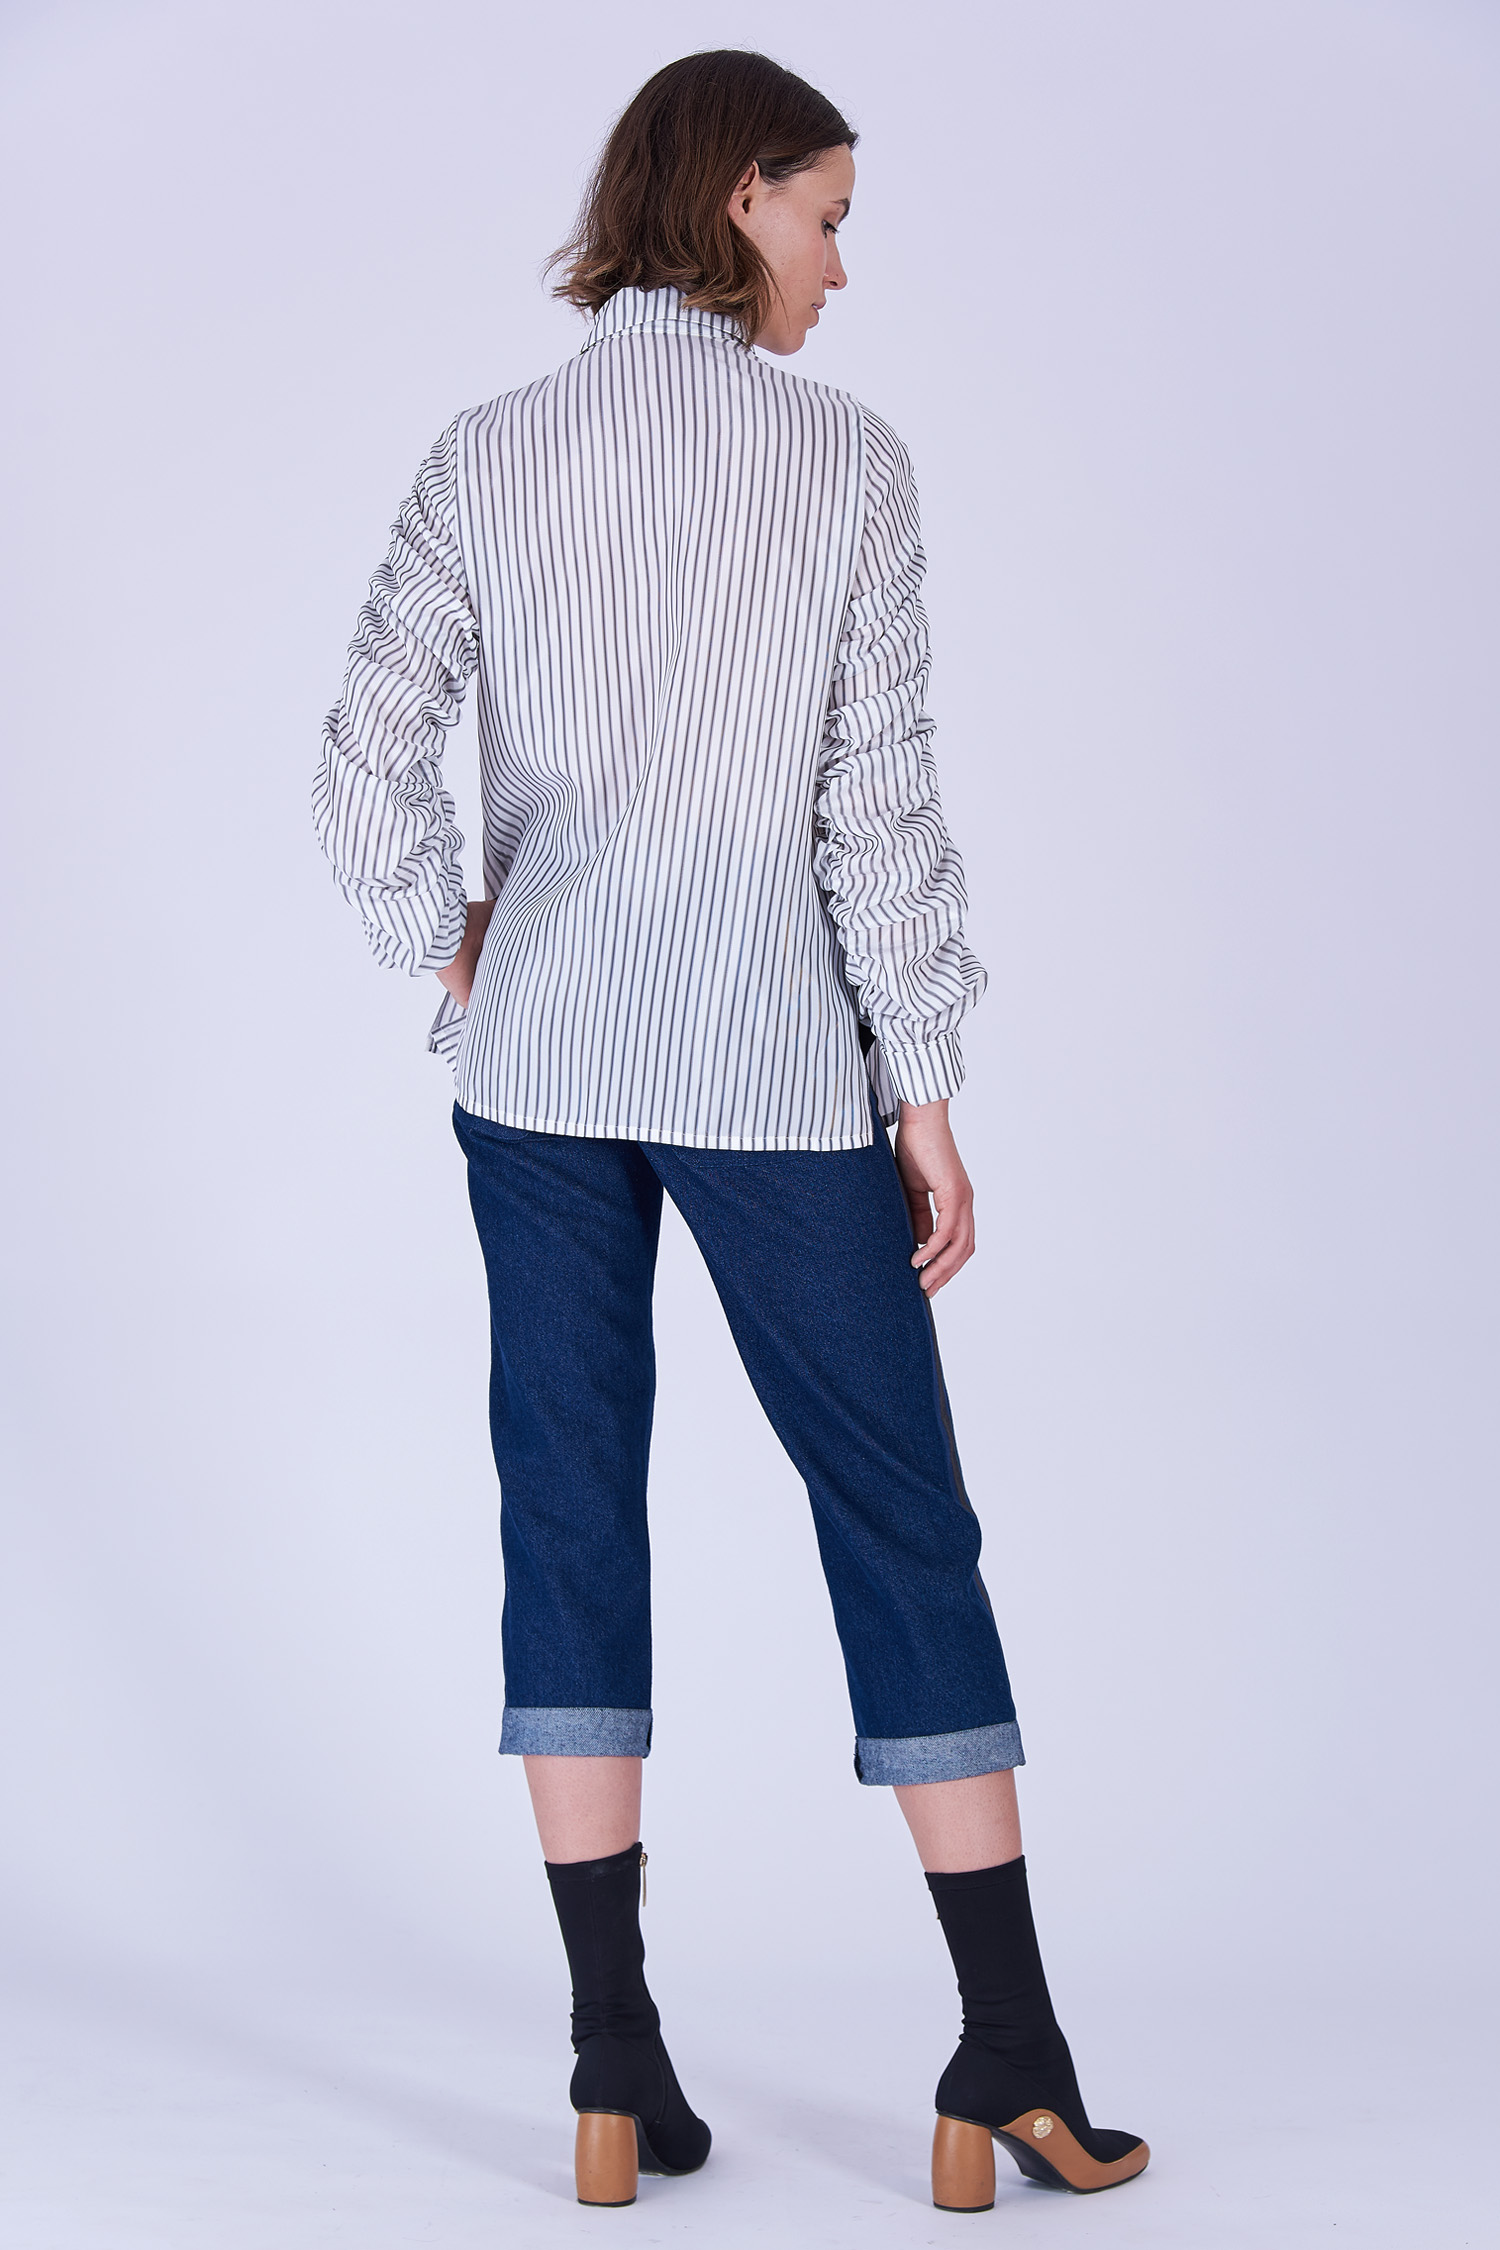 Acephala Fw19 20 White Striped Buttoned Shirt Biala Koszula Paski Back 1